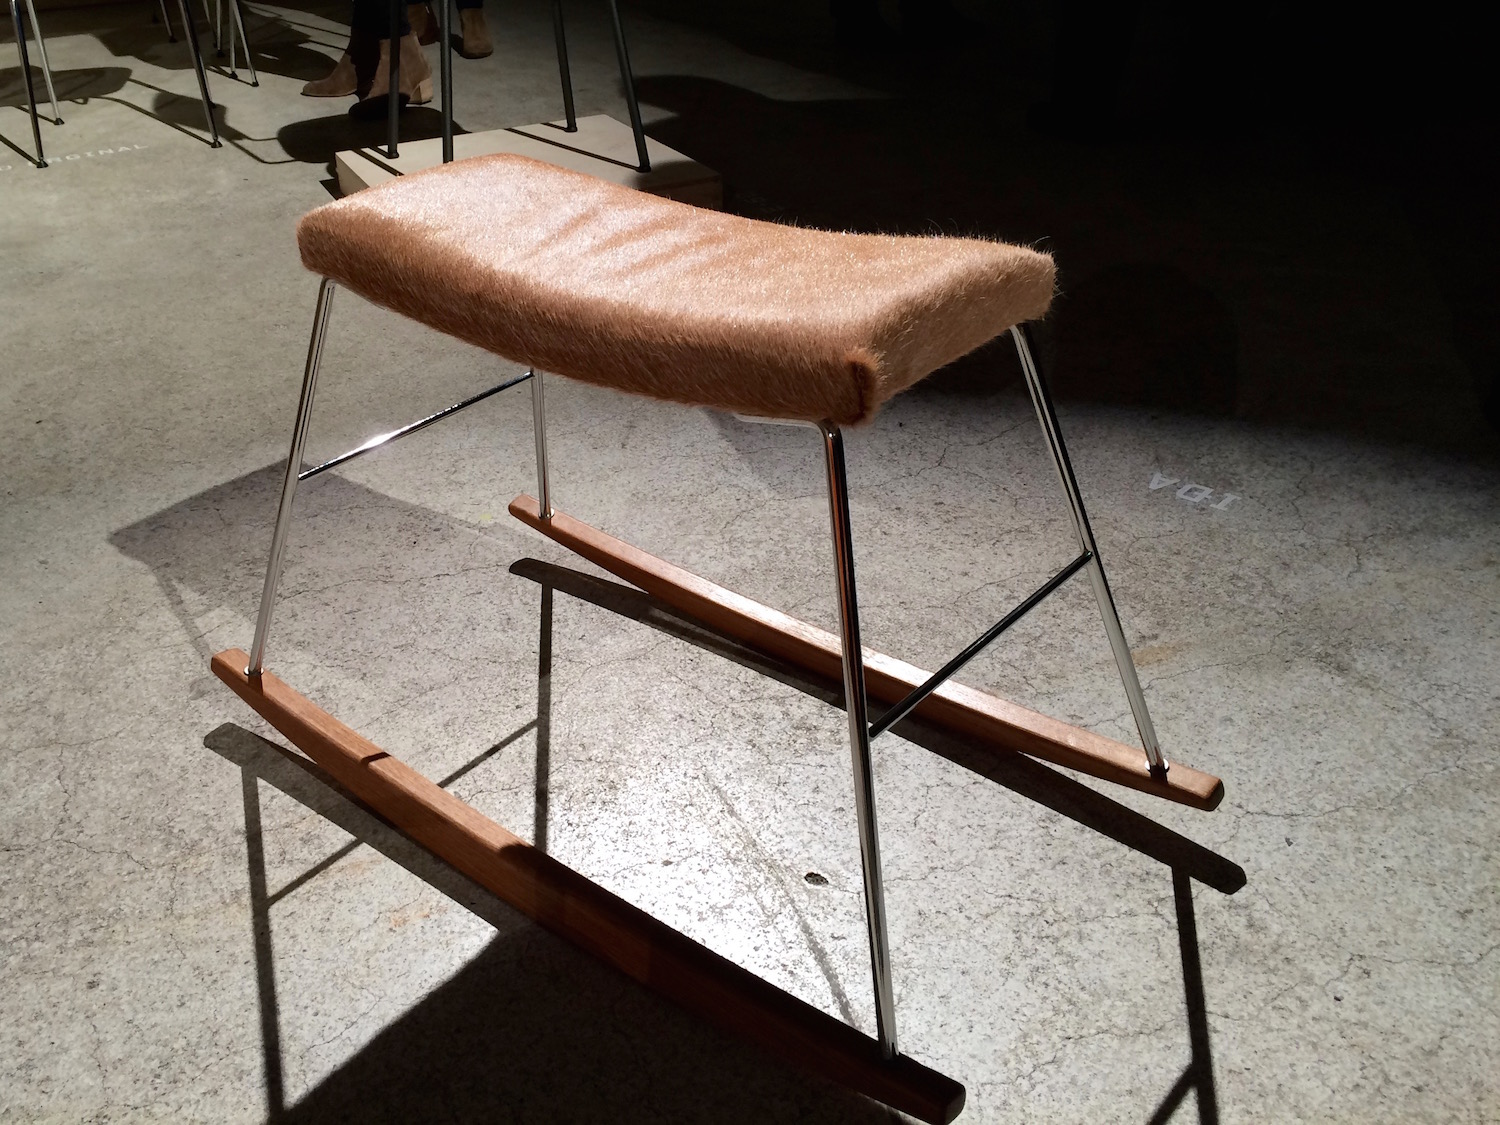 IÐA Rocket/Roller seat in oak, steel and cowhide leather